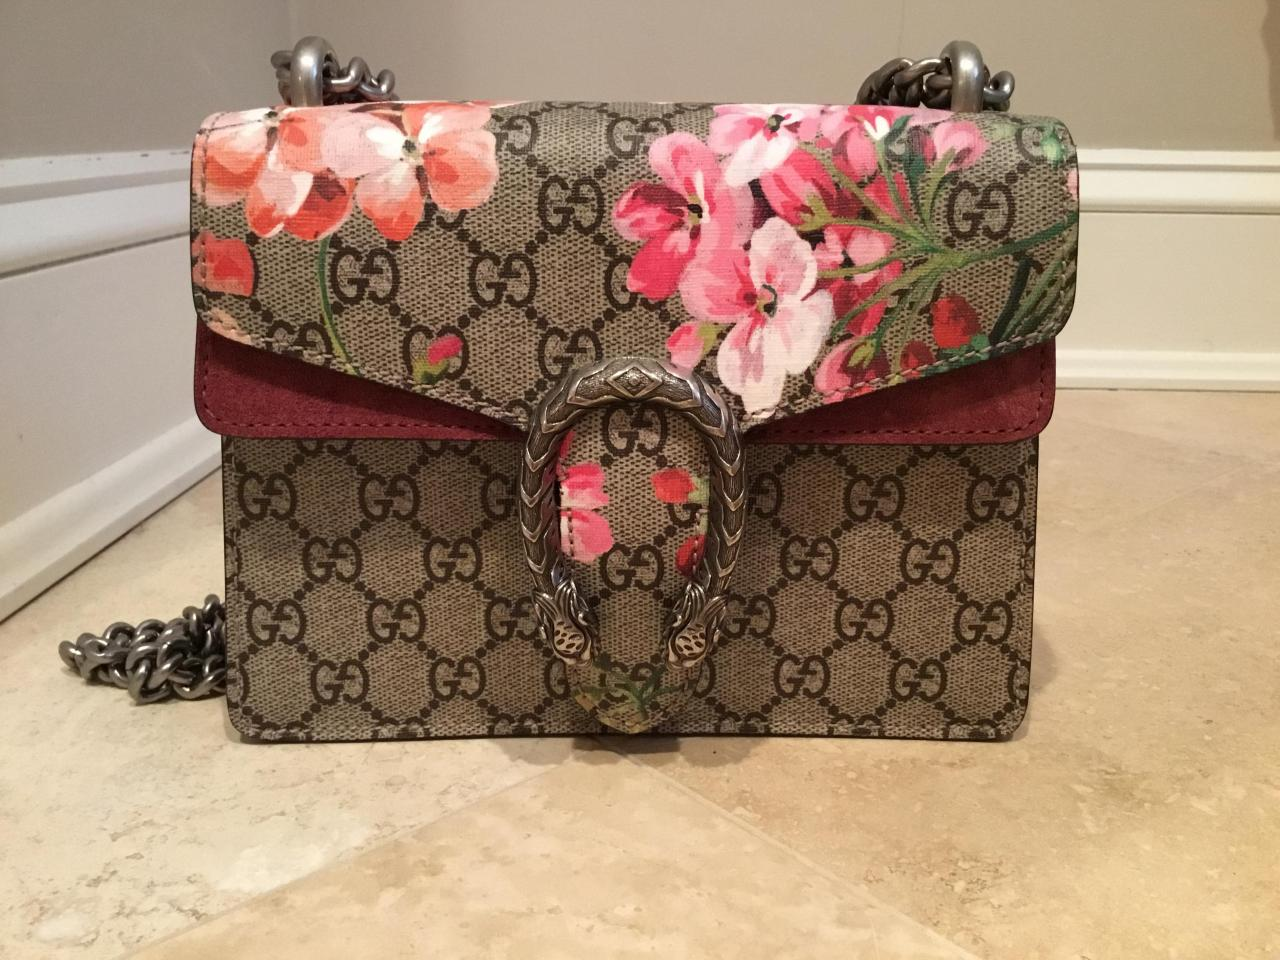 2db6b5b7974 Gucci Dionysus Womens Gg Blooms Mini Floral Leather Shoulder Bag Replica  Trusted Dealers